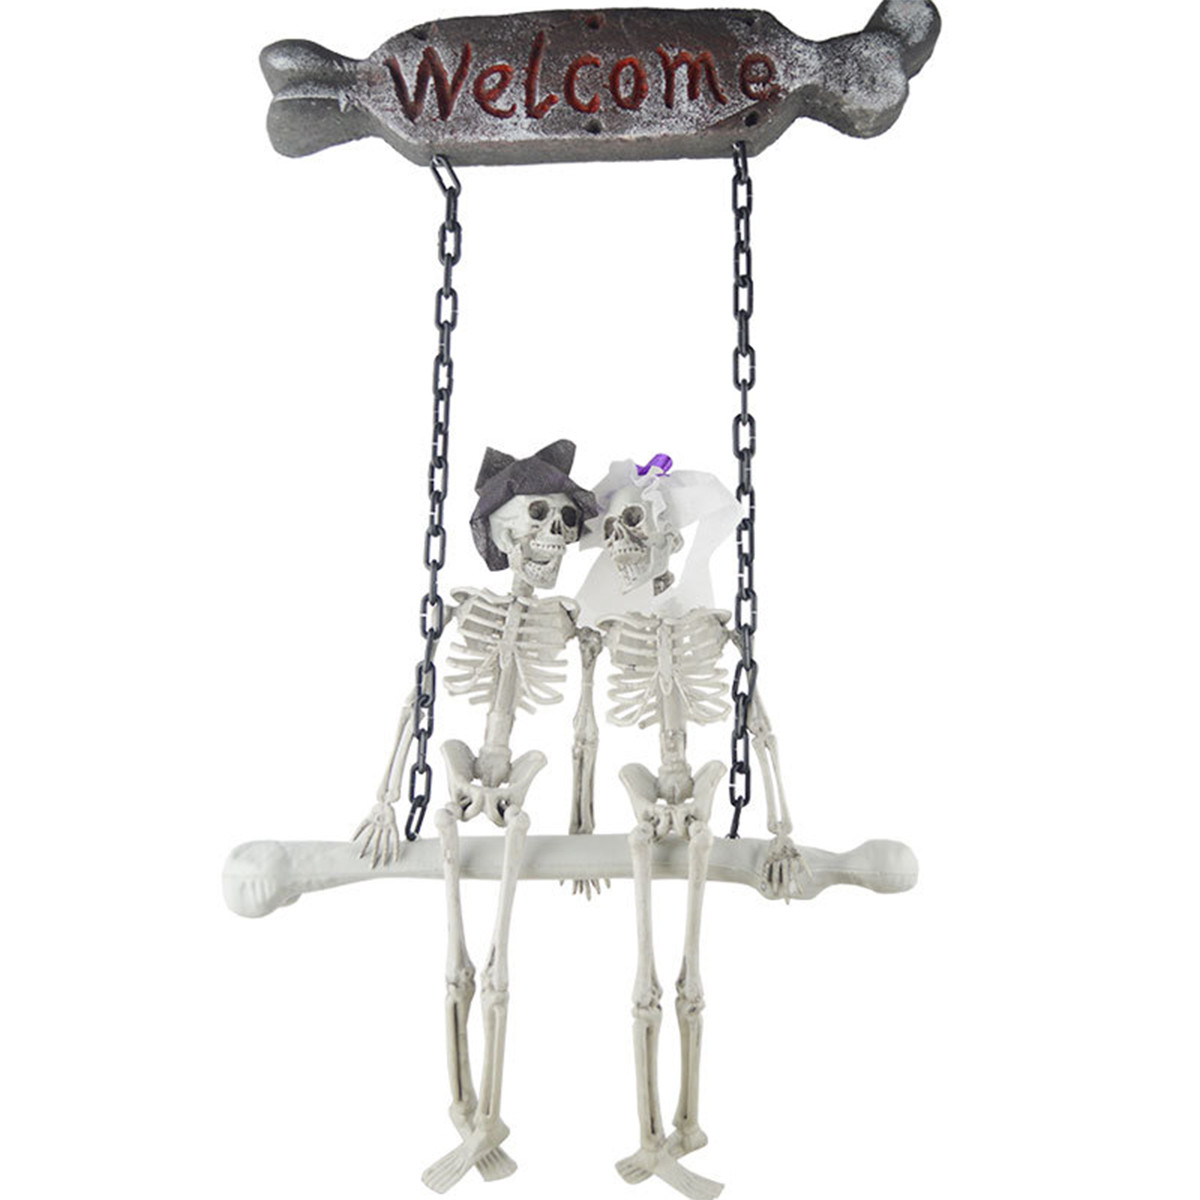 Halloween Decorations Couple Skeleton Hanging Ghost Prop Scary Haunted House Outdoor Indoor - White